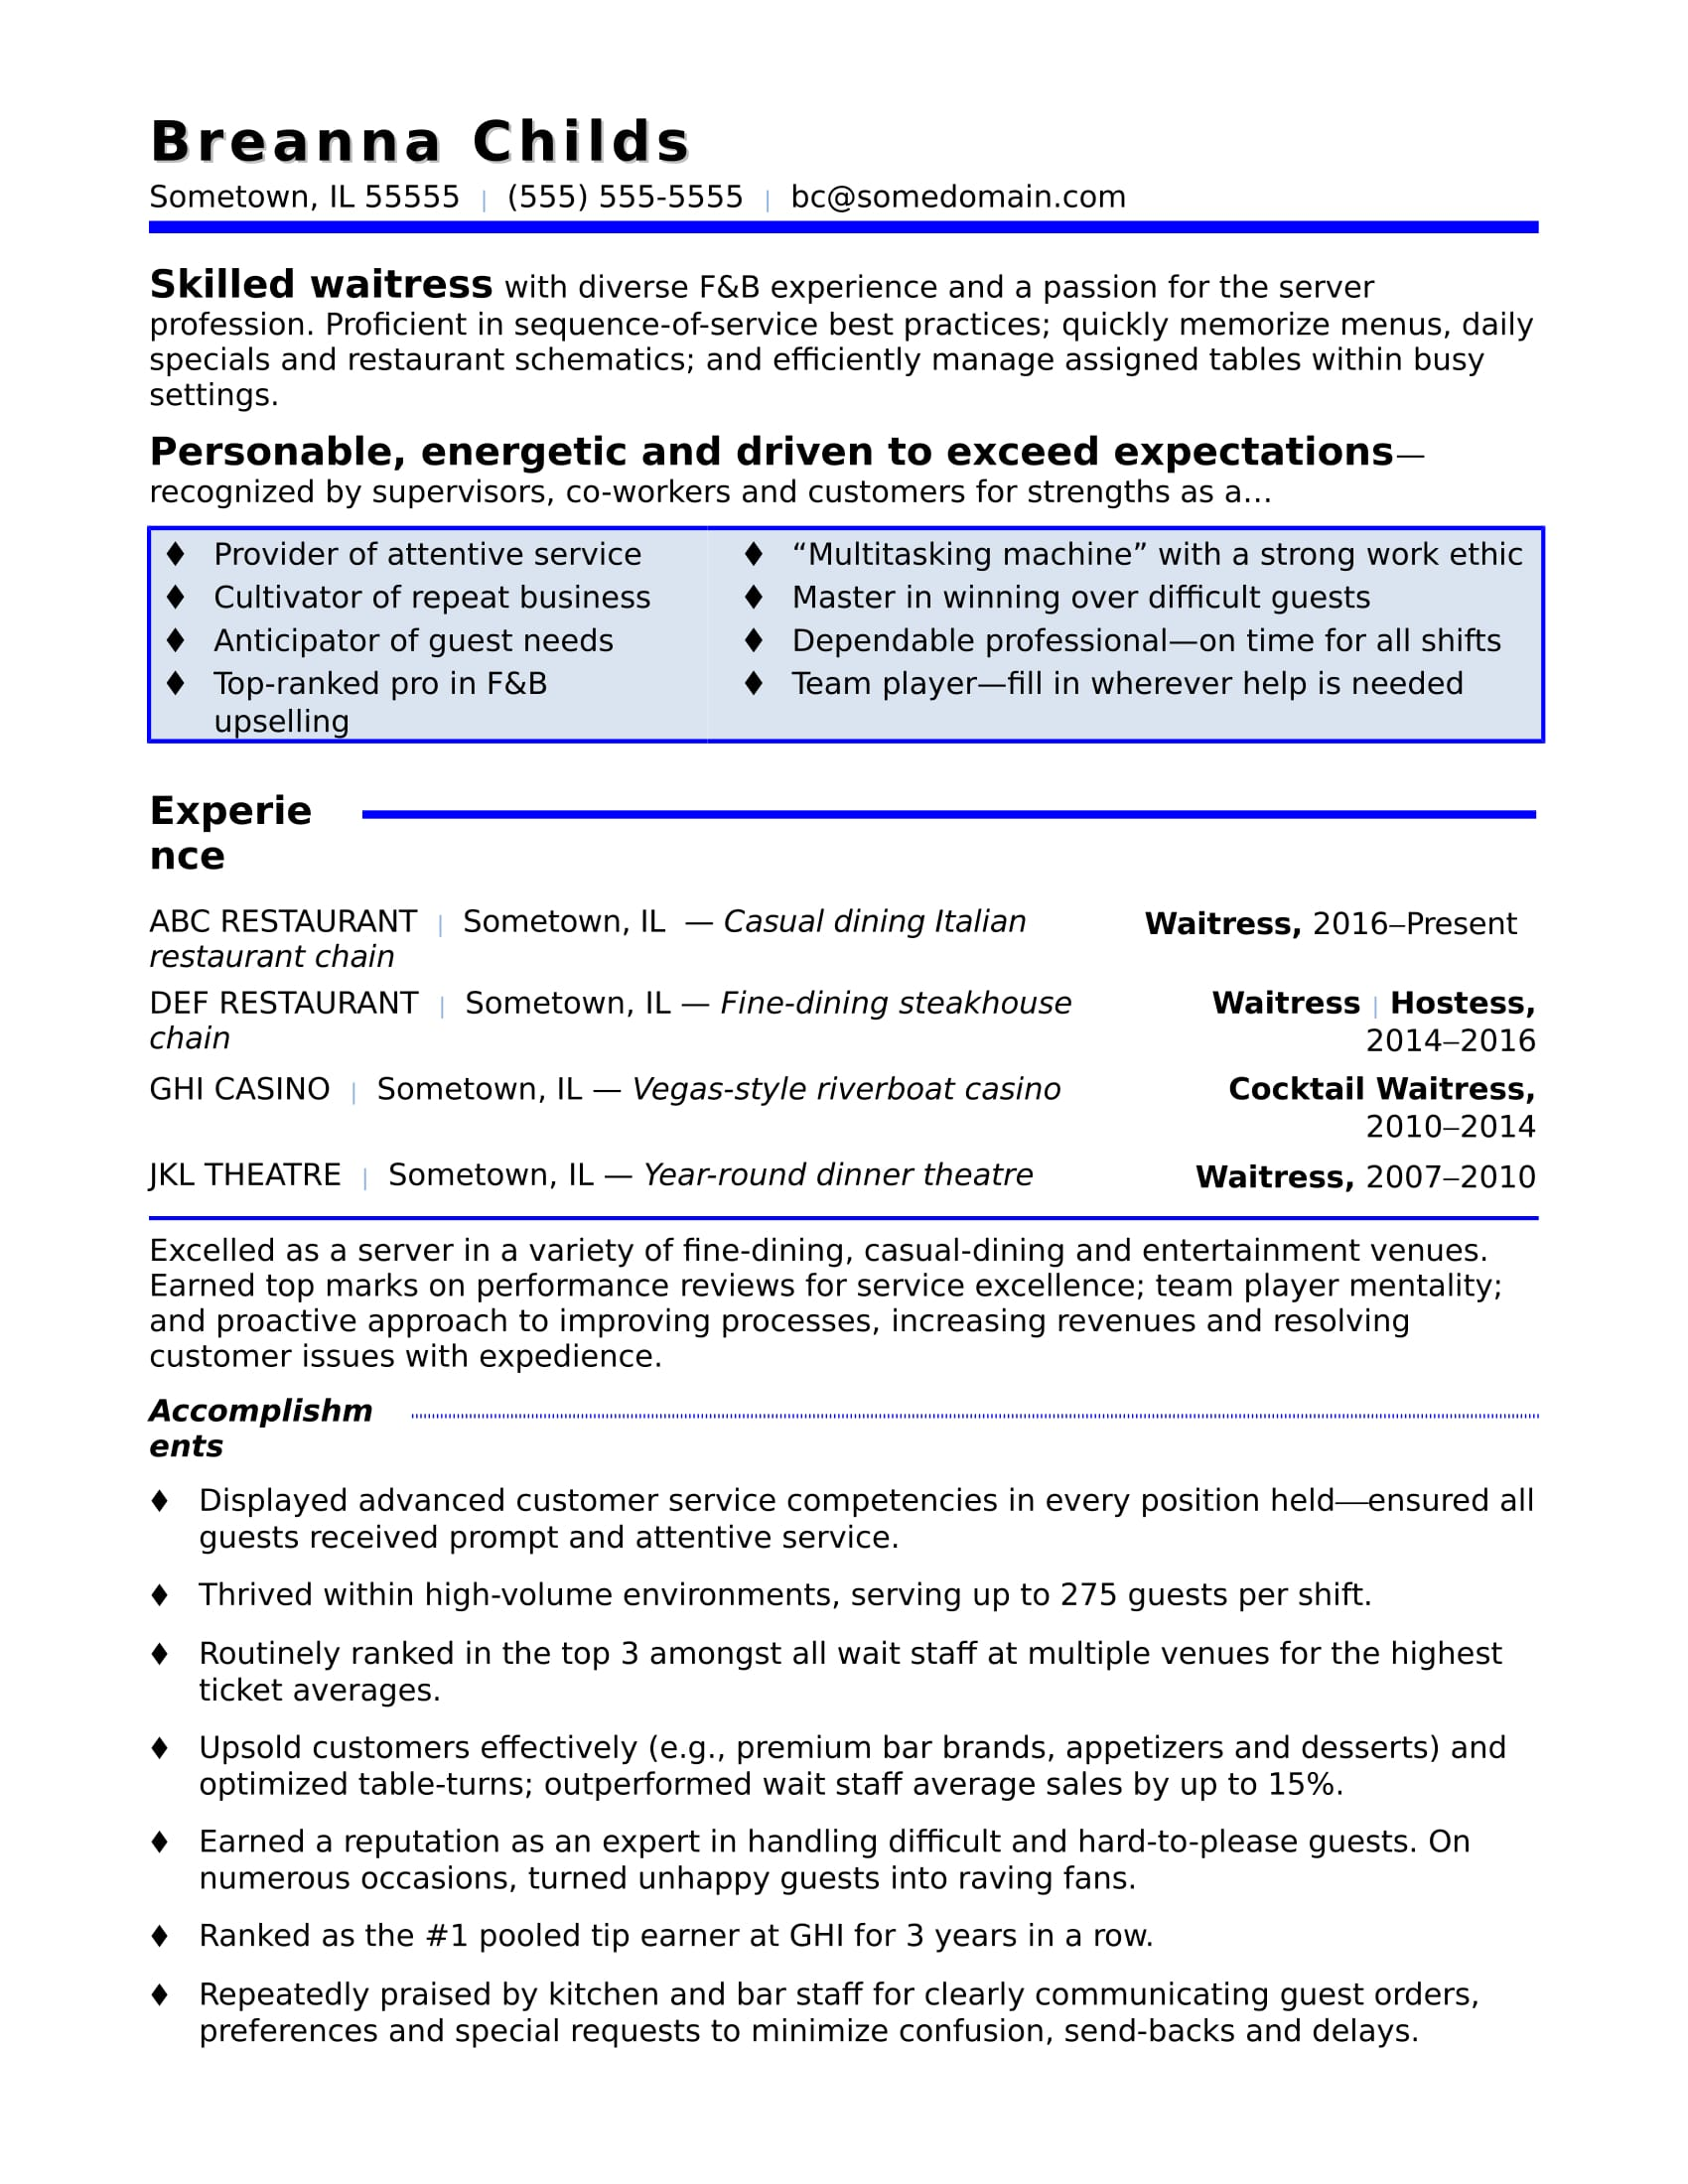 Waitress Resume Sample | Monster.com